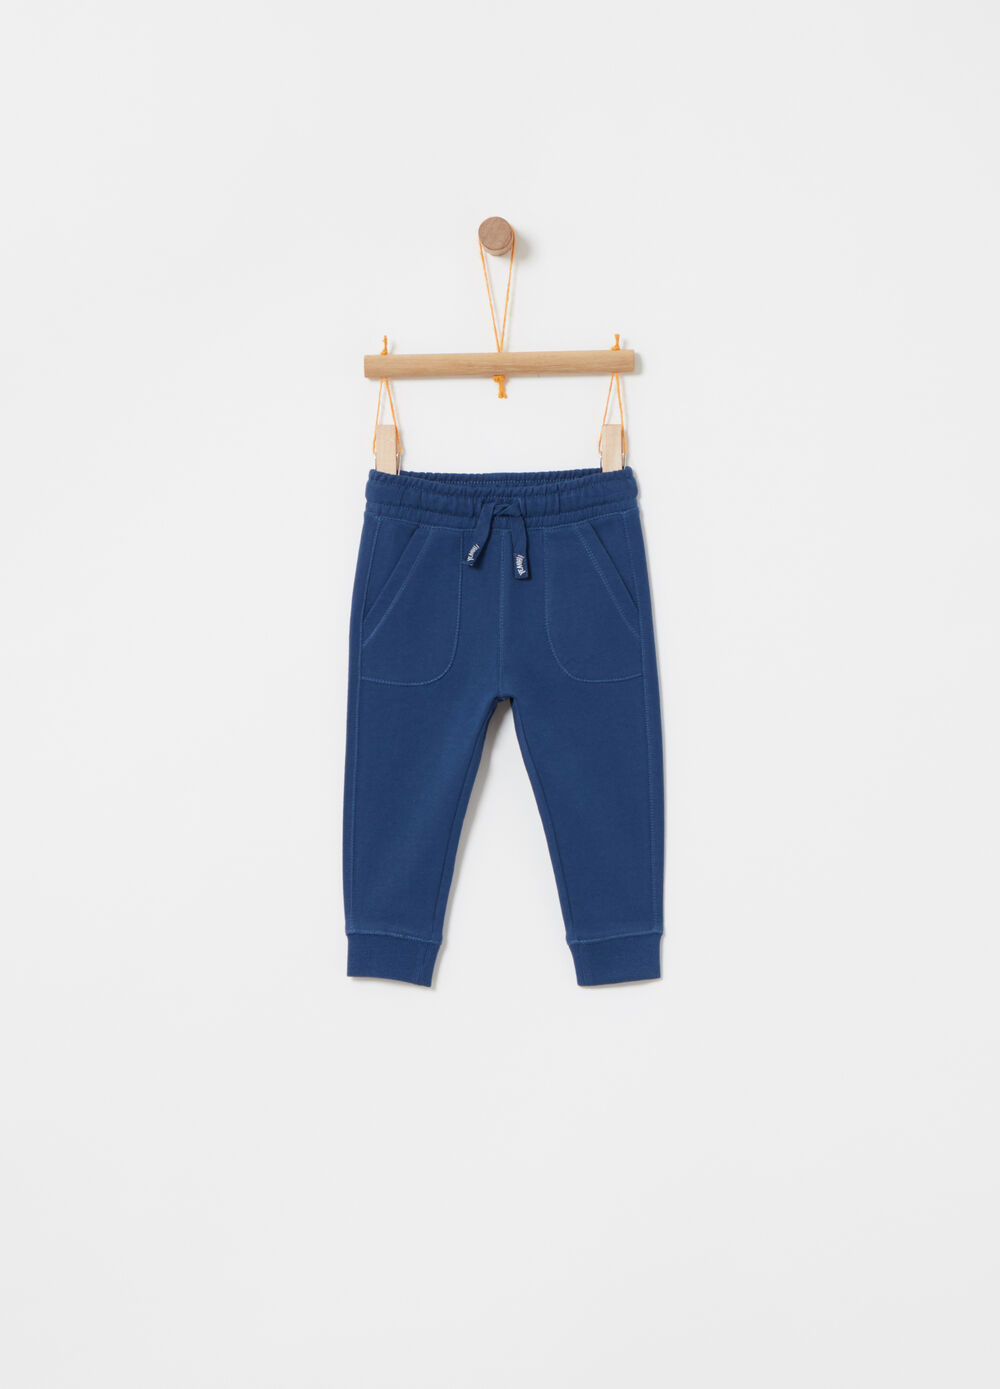 French terry trousers with drawstring